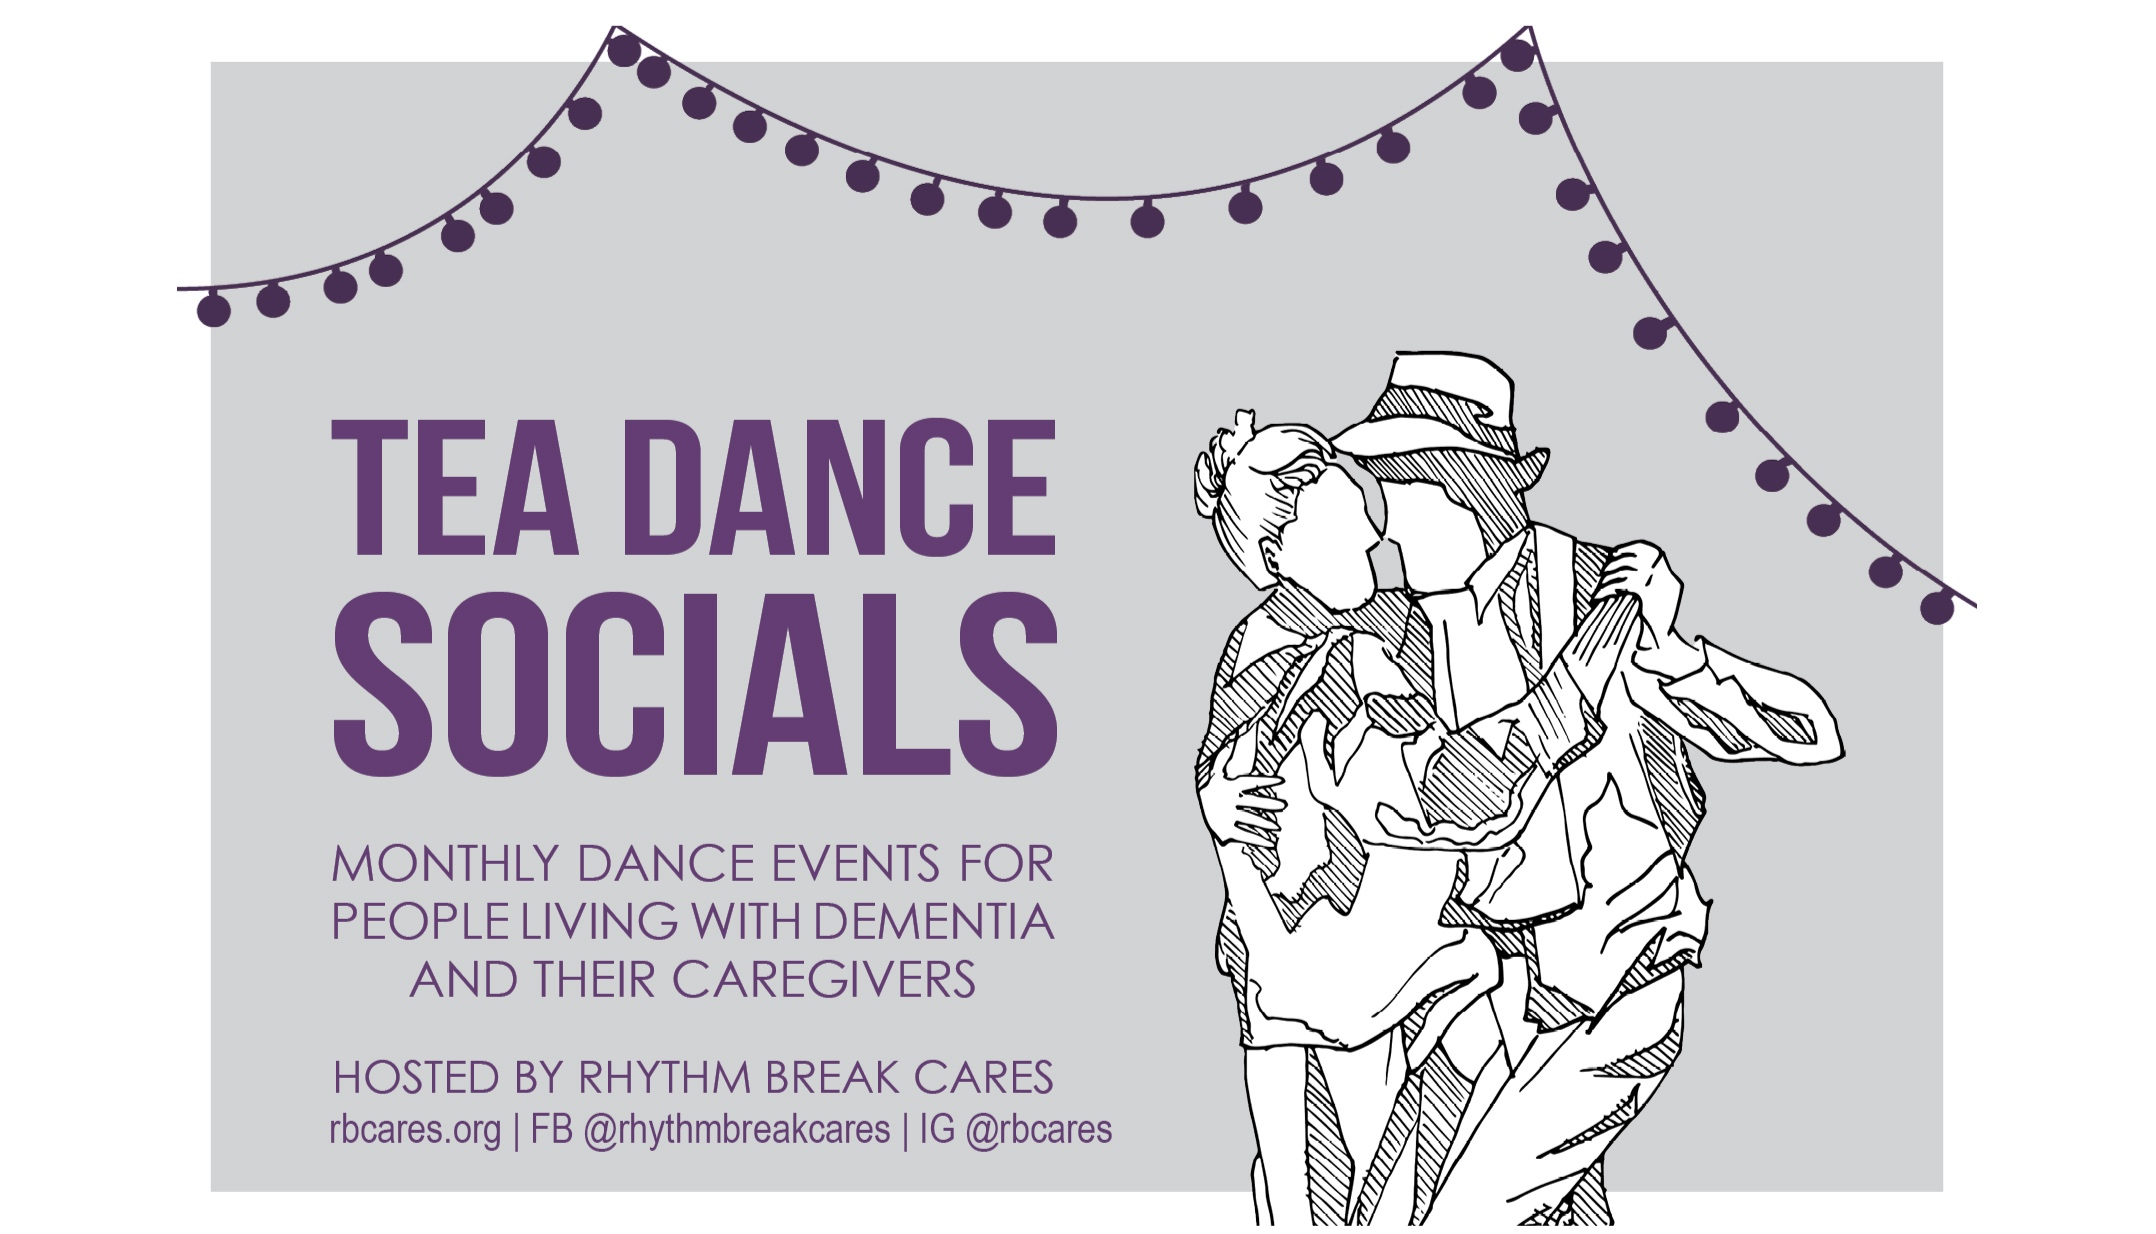 Dance with us to #EndAlz! - NEXT DANCE // Wed OCT 16 & NOV 13 at 1261 Broadway, Suite 309. FREE (suggested donation $10-$15)!Email us to RSVP: rbcares@gmail.com